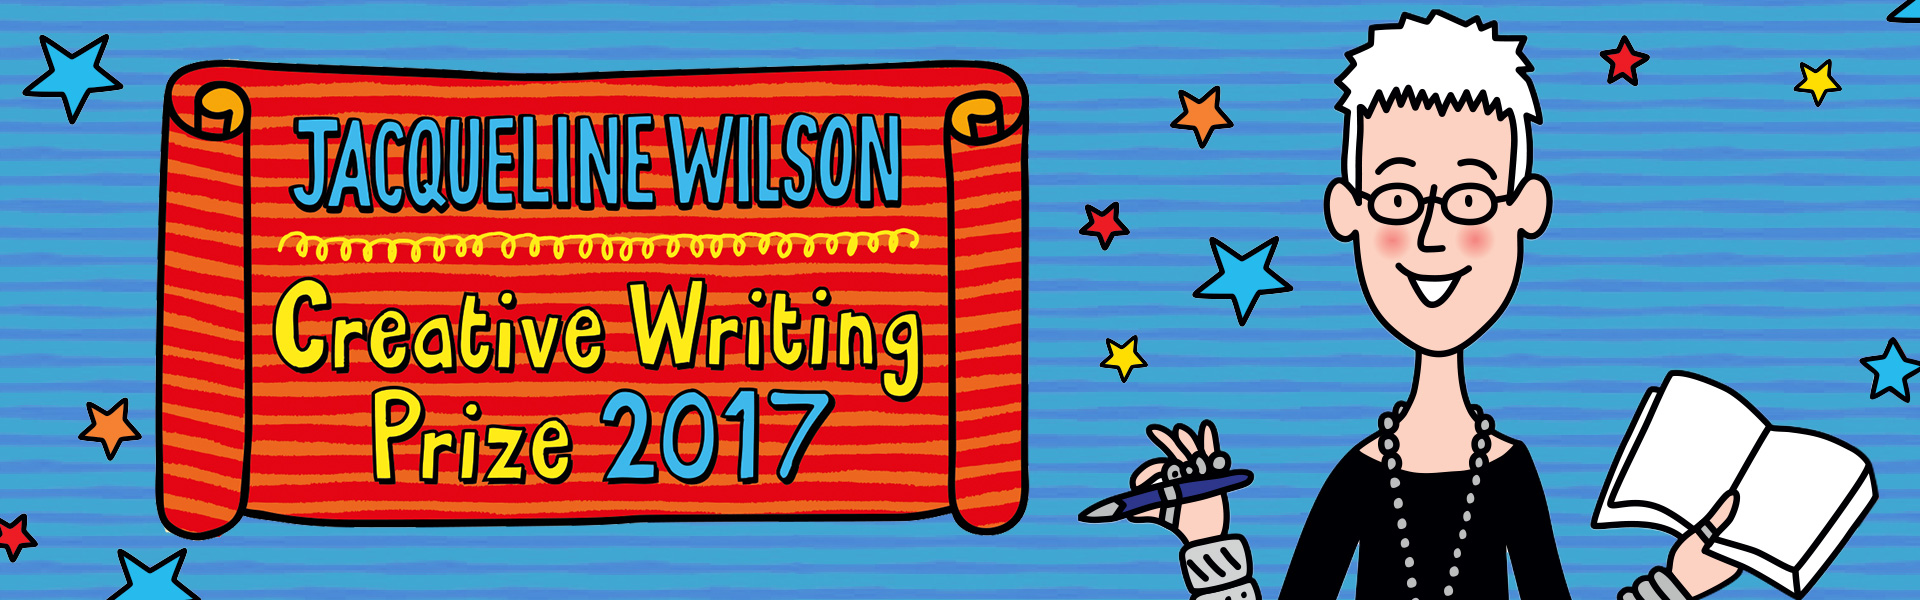 Jacqueline Wilson: Top Tips for Letter Writing